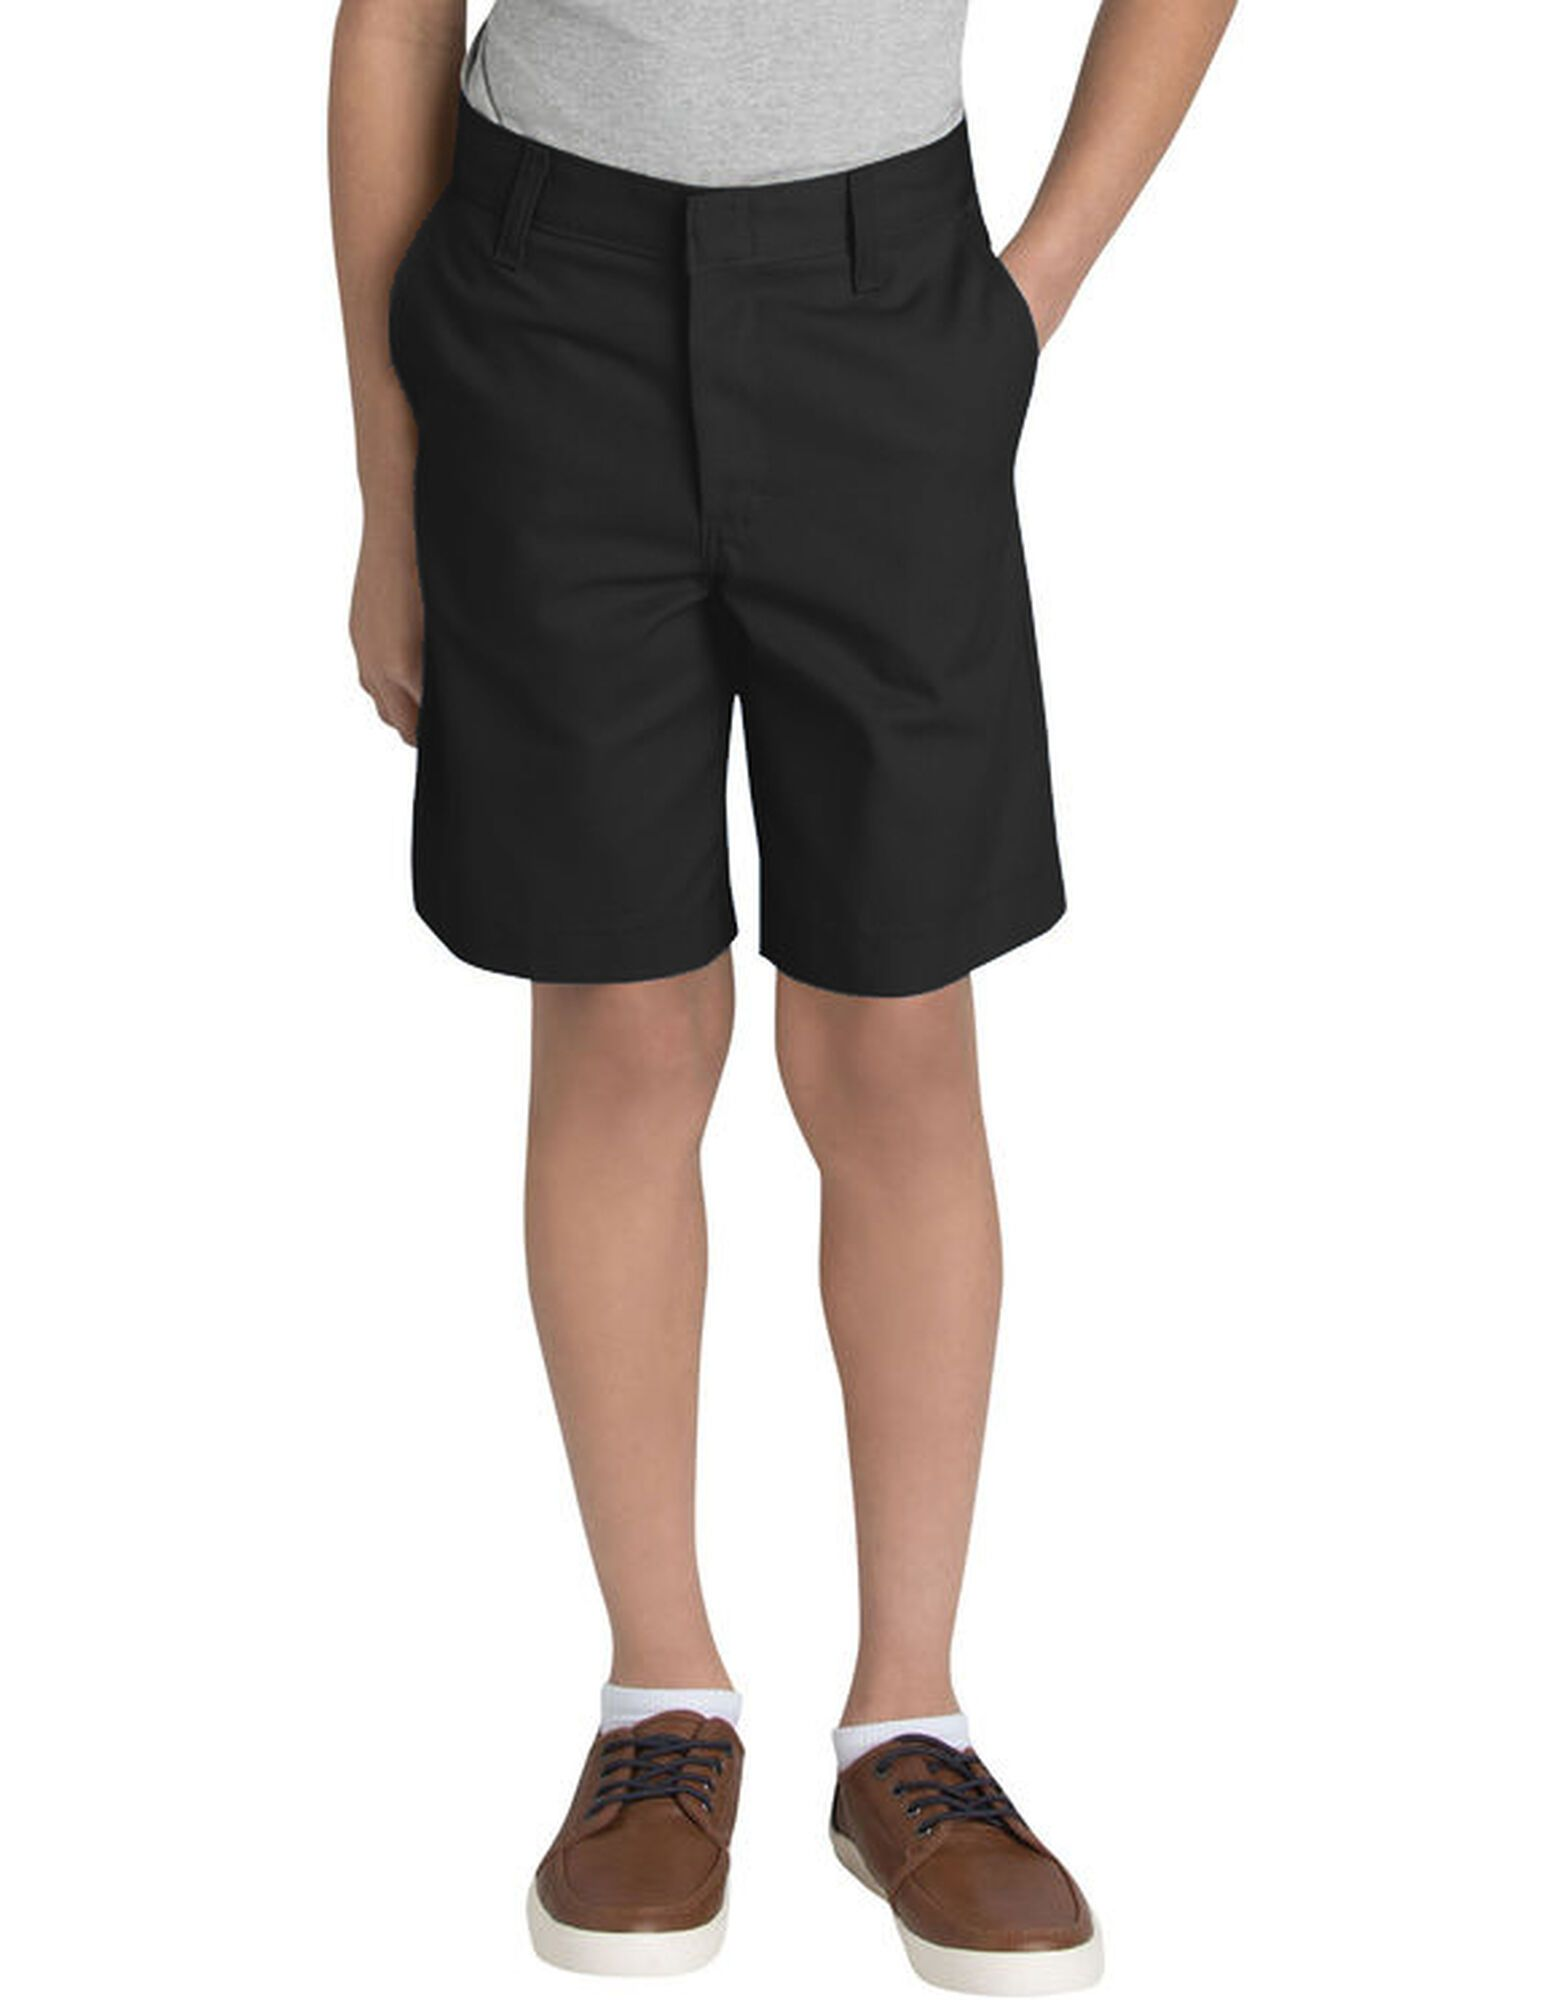 Young Adult Sized Classic Fit Flat Front Shorts-